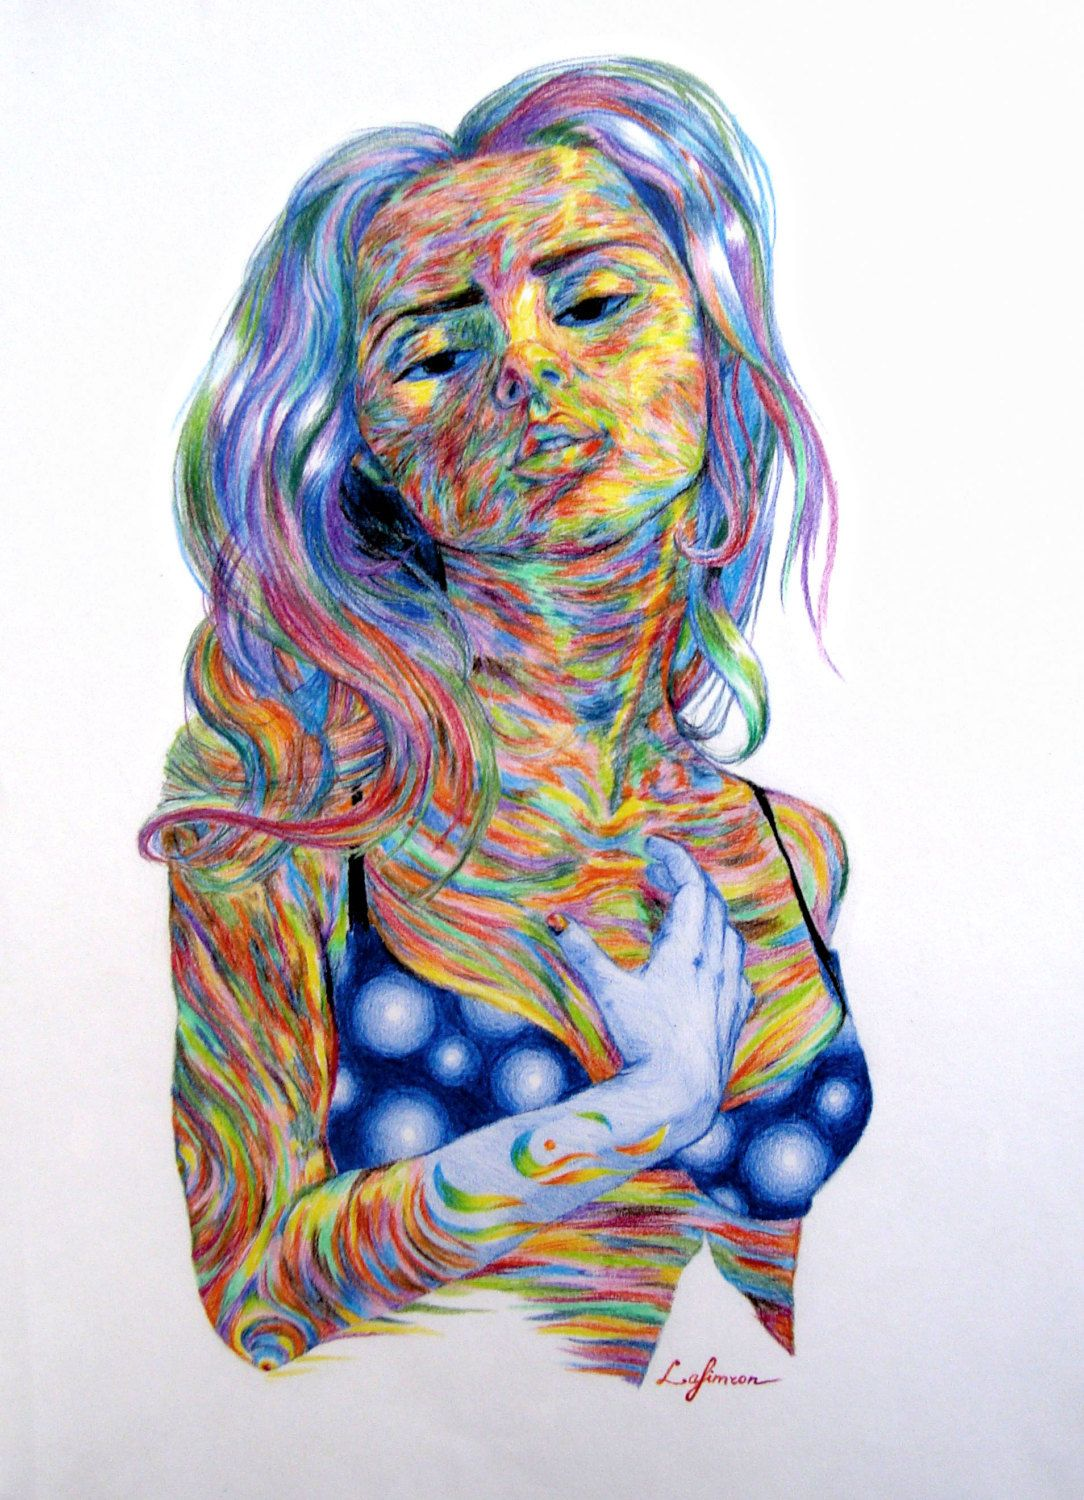 Color art colored pencils - Psychedelic Painting Rainbow Colouring Colored Pencil Art Colorful Drawing Lights Art Blue Yellow Red Art Bright Color Rainbow Drawing